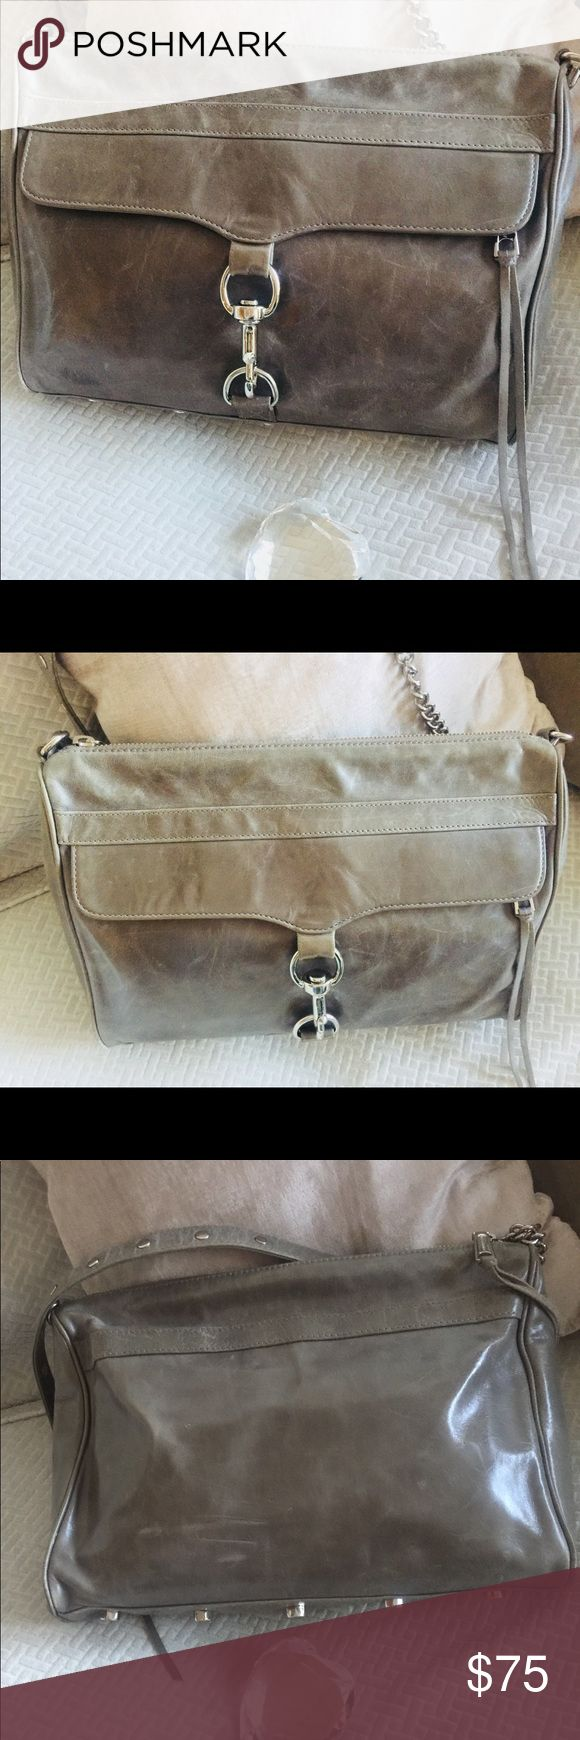 Gorgeous Rebecca Minkoff leather purse/bag! Loved, but in great condition and ready for action! Lovely Rebecca Minkoff bag that's super roomy & versatile. If you a familiar with her bags, the leather is glorious and I love grey over traditional black as a staple for your wardrobe. I wore this both casual, work and travel as I could fit a lot in it and wear it cross body style or just a shoulder bag. Interior is clean with interior zippers for a lipstick, your phone or whatever! Get it at a…